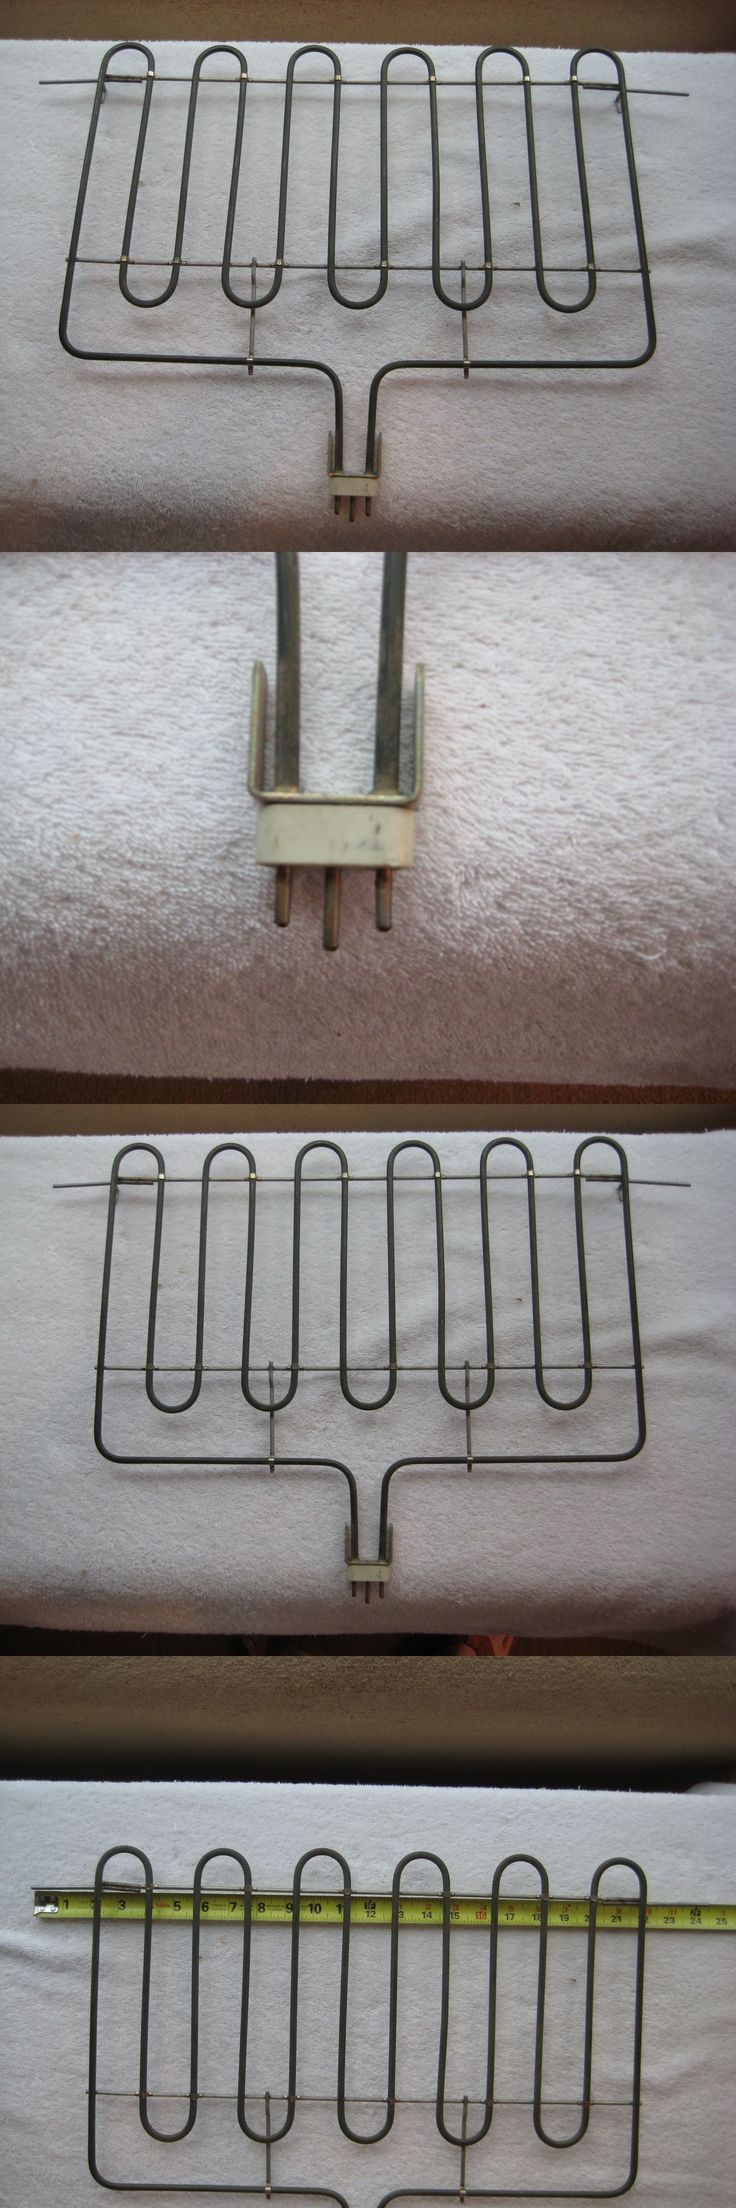 Hotpoint Oven Heating Element Replacement Best 20 Heating Element Ideas On Pinterest Heater For Room